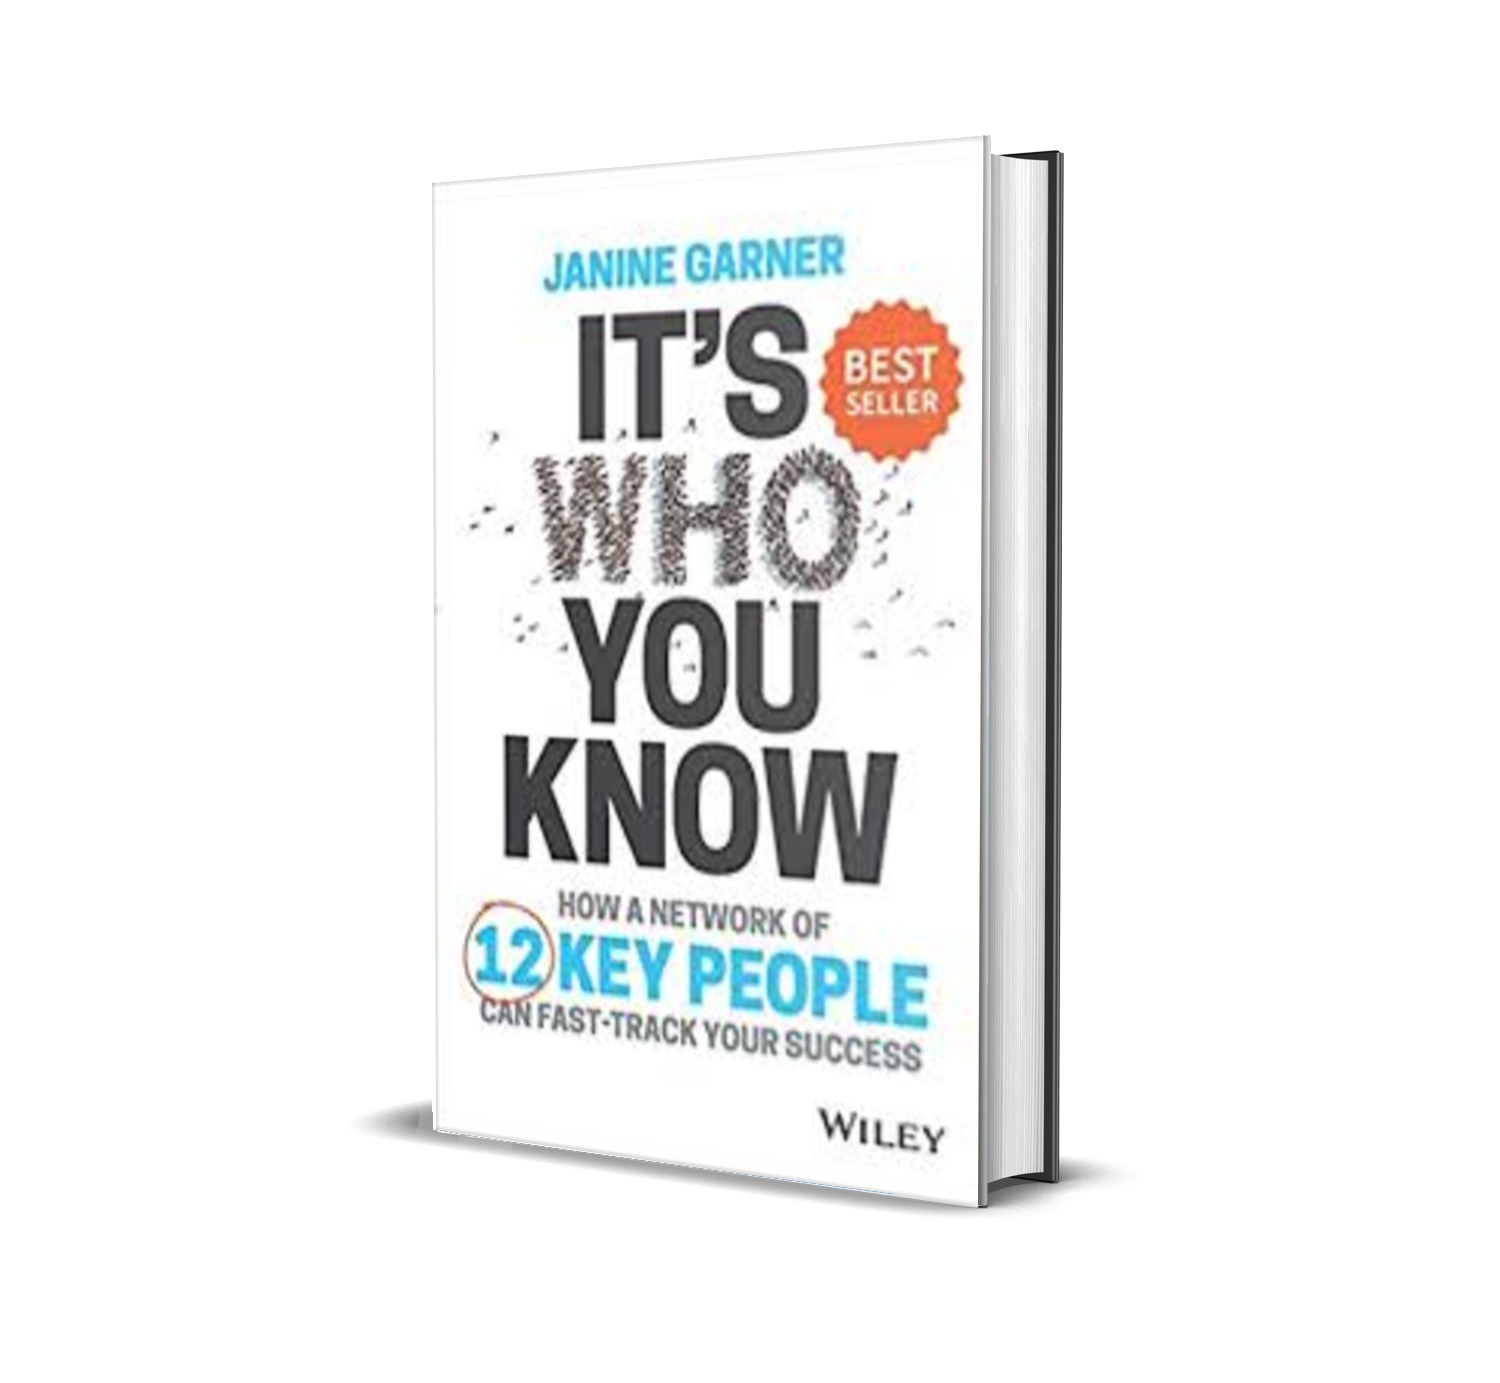 It's Who You Know: How a network of 12 key people can fast-track your success - Janine Garner